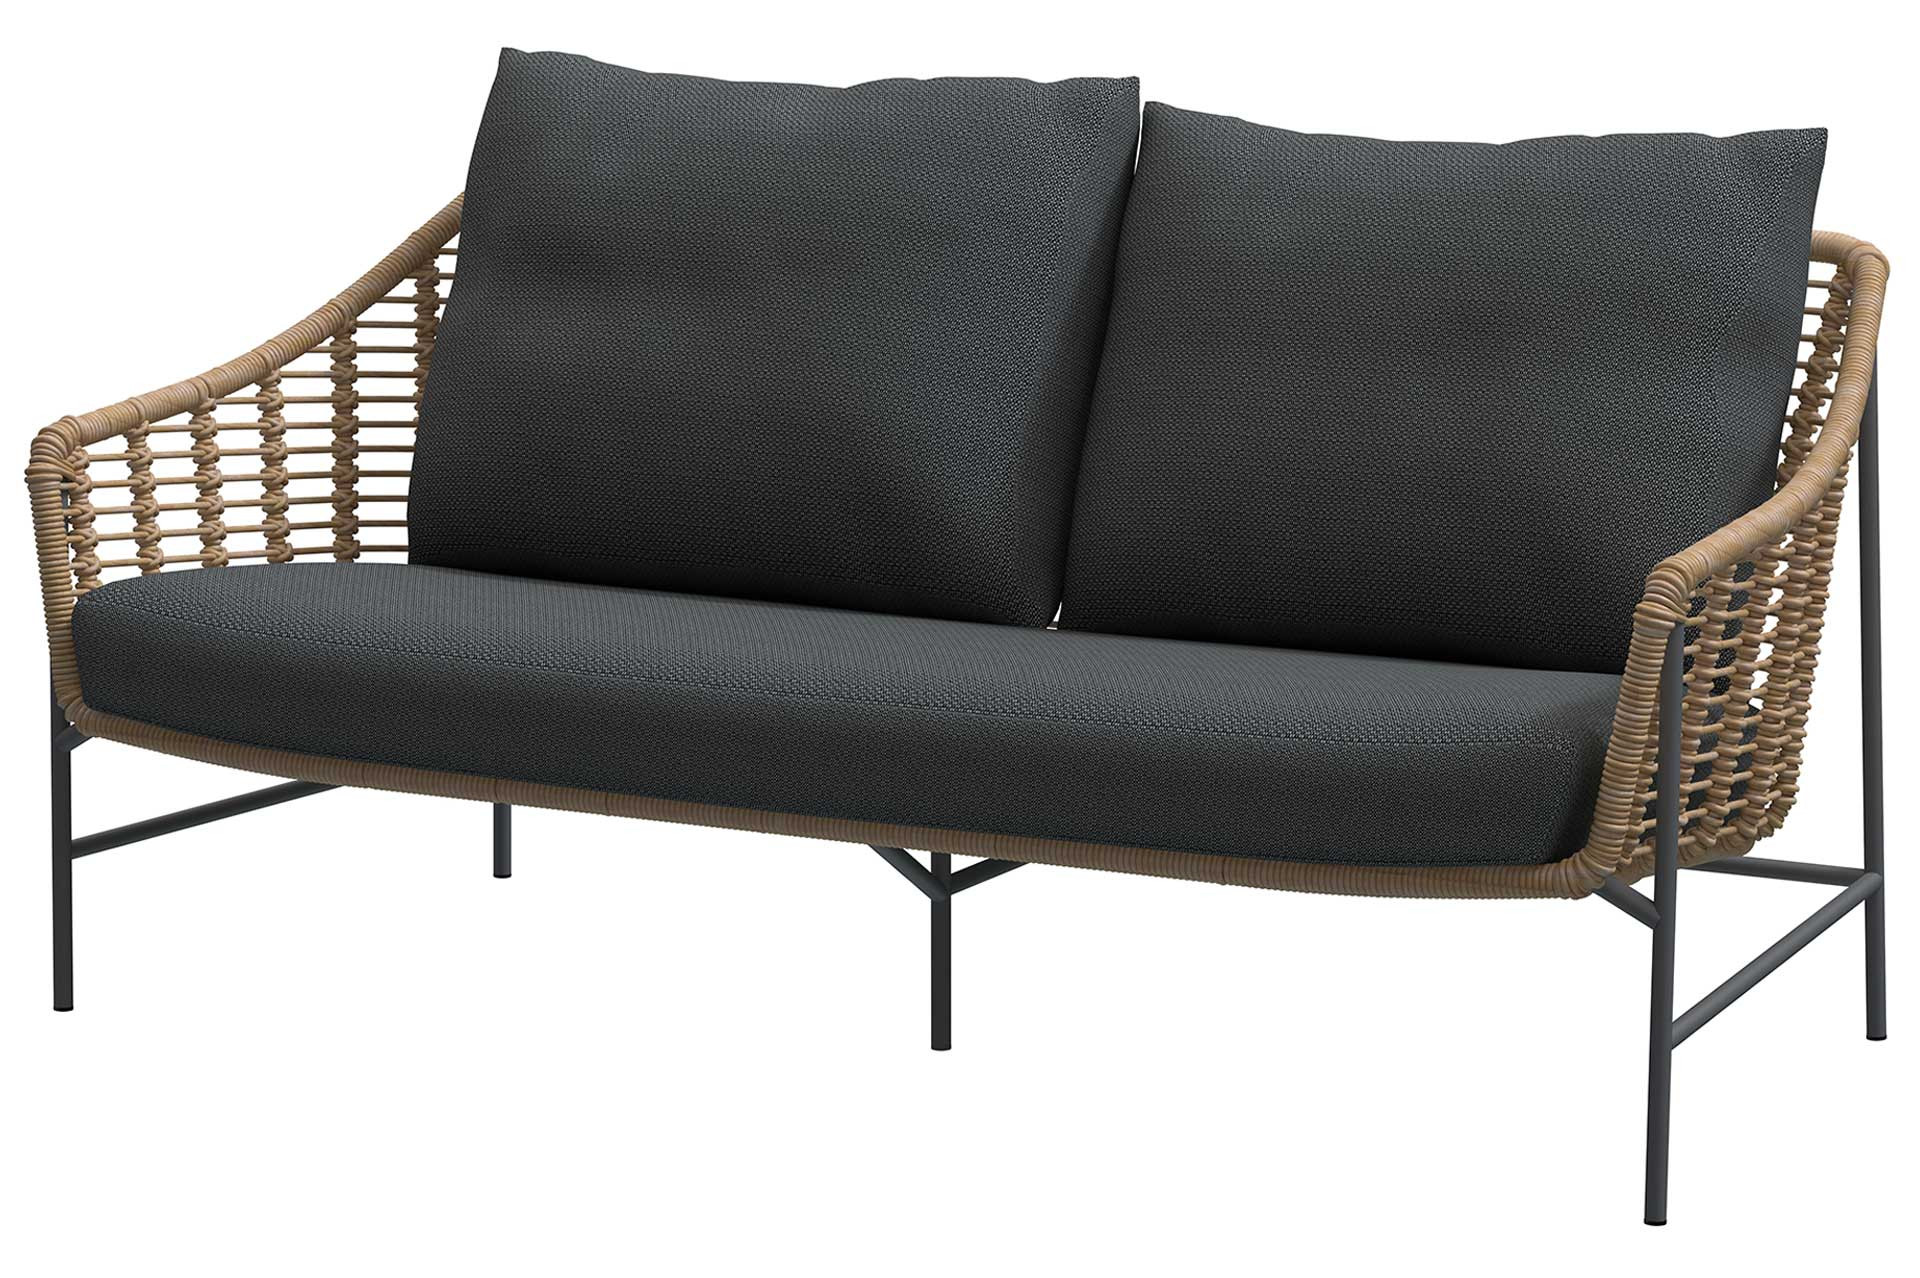 Timor living bench 2.5 seaters Harvest with 3 cushions